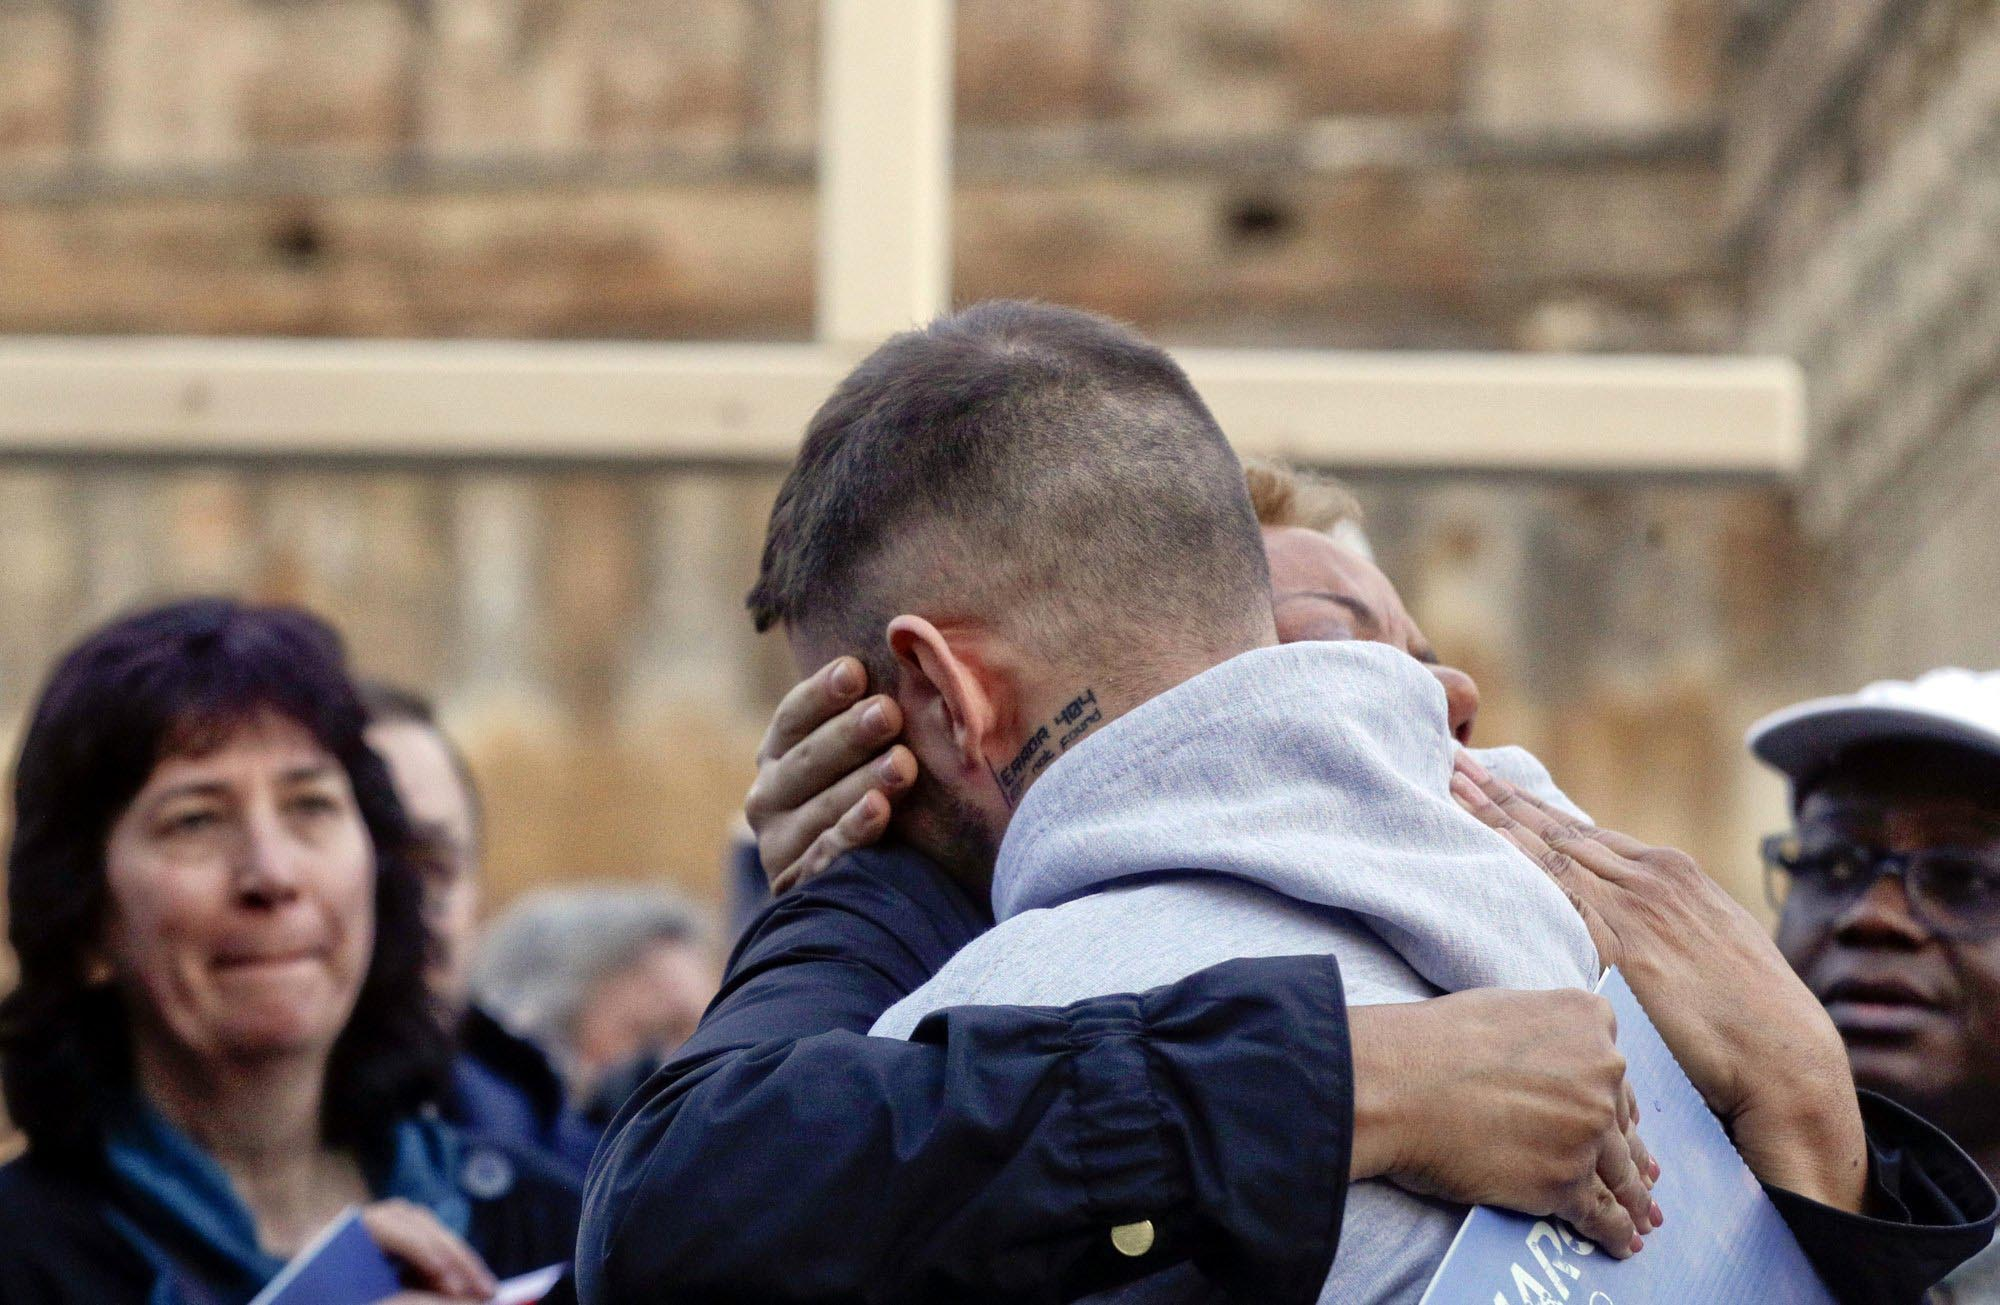 Sex abuse survivor Alessandro Battaglia, right, is hugged by survivor and founding member of the ECA (Ending Clergy Abuse), Denise Buchanan, during a twilight vigil prayer near Castle Sant' Angelo, in Rome, Thursday, Feb. 21, 2019nPhoto: AP